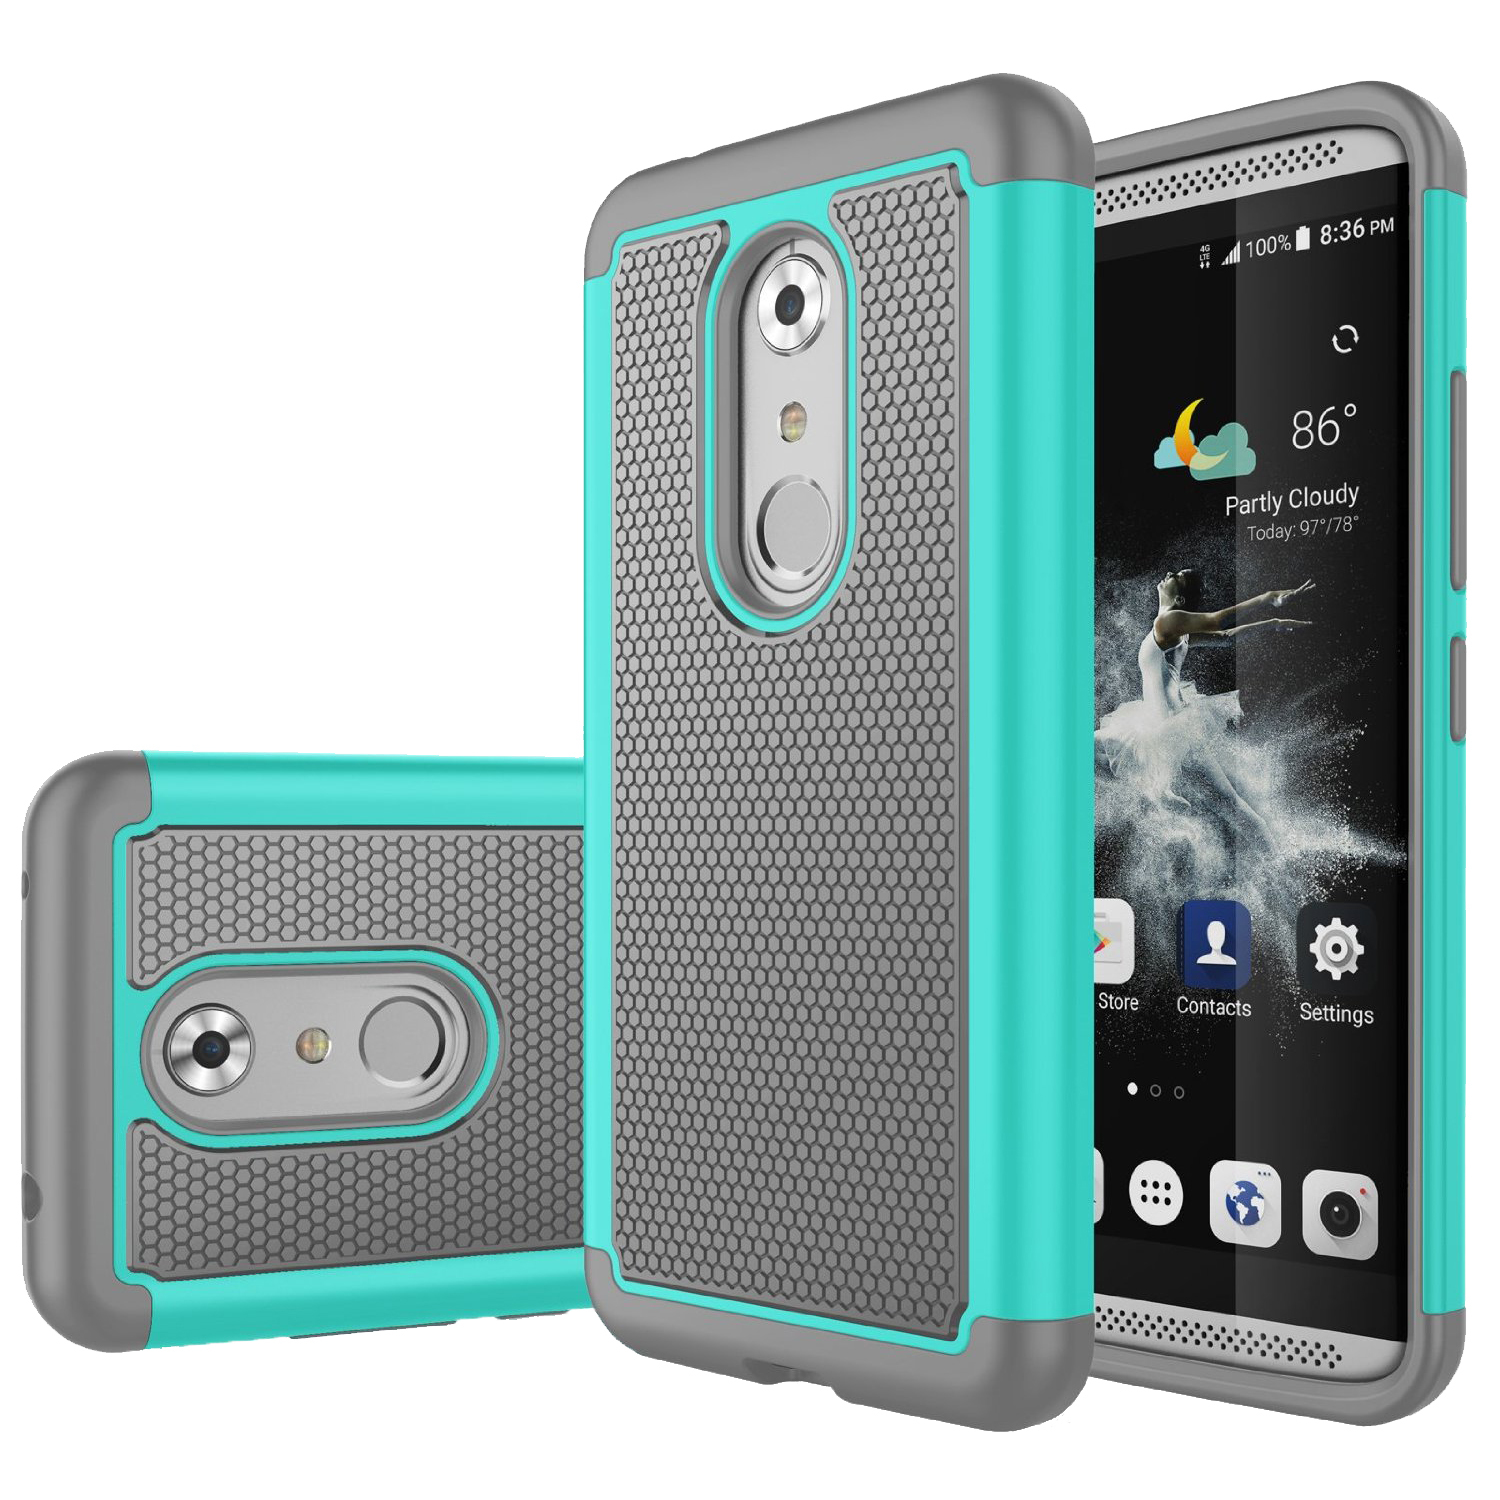 Orbing hybrid armor dual layer protective cover case for zte axon 7 cyan gray p20160821142238905